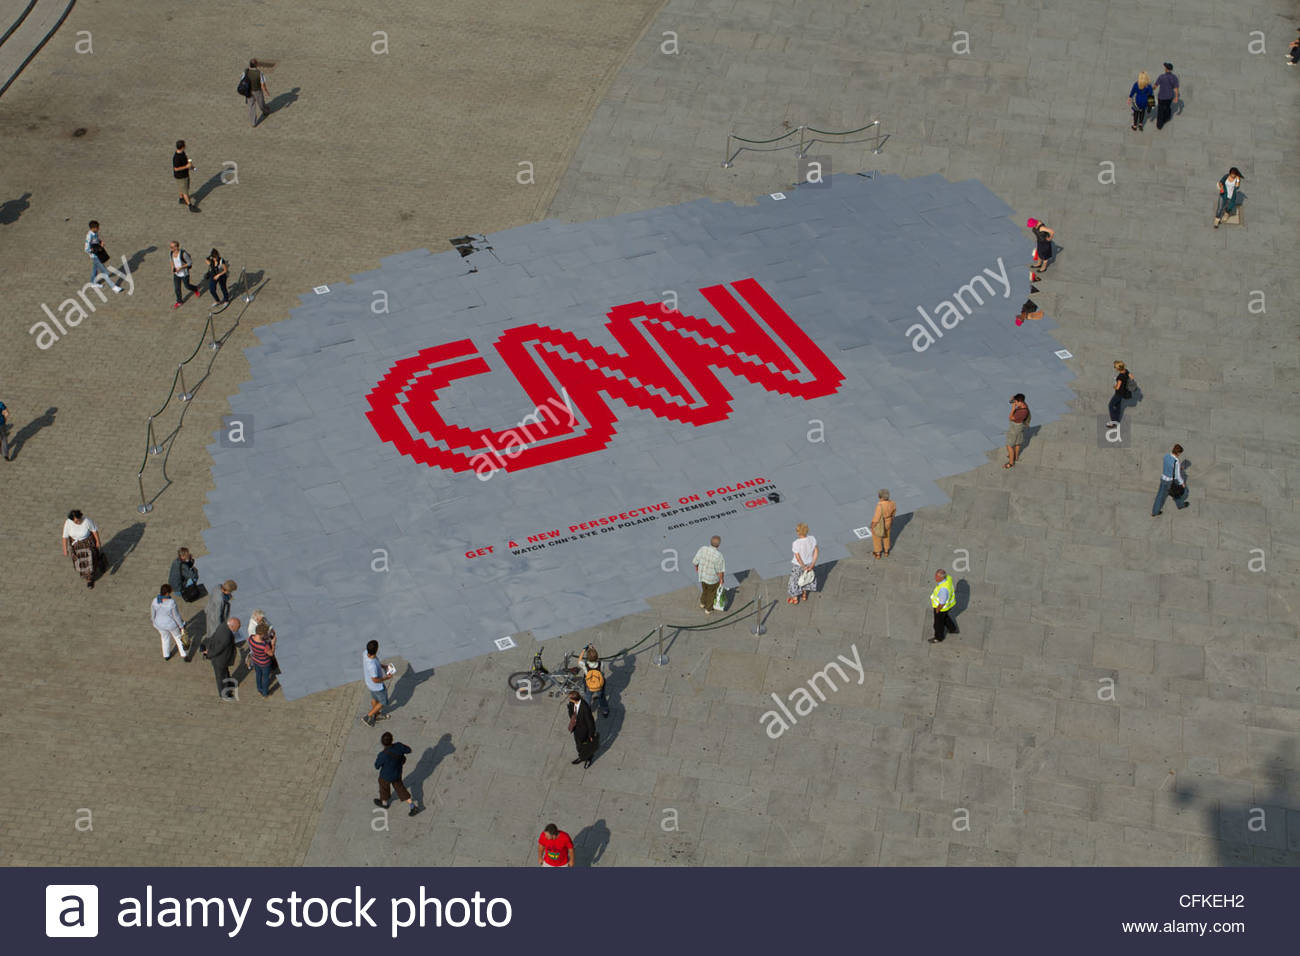 Cnn Icon Stock Photos & Cnn Icon Stock Images - Alamy